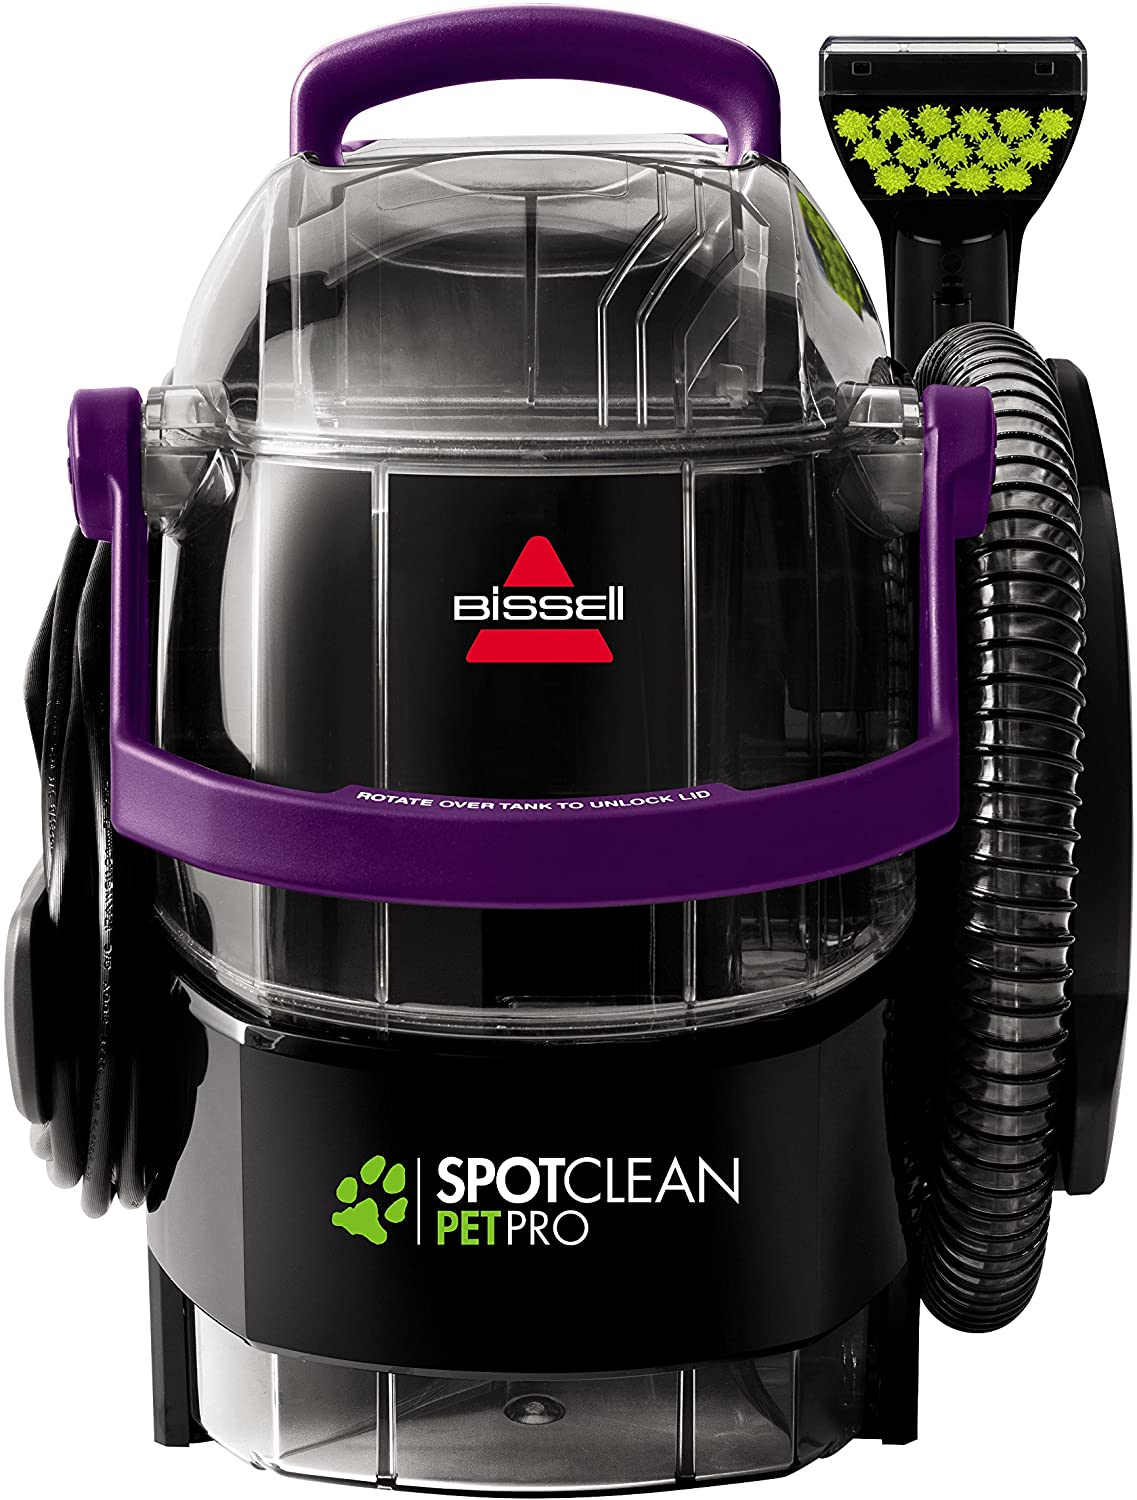 Bissell Multi-Purpose Portable Upholstery Cleaner